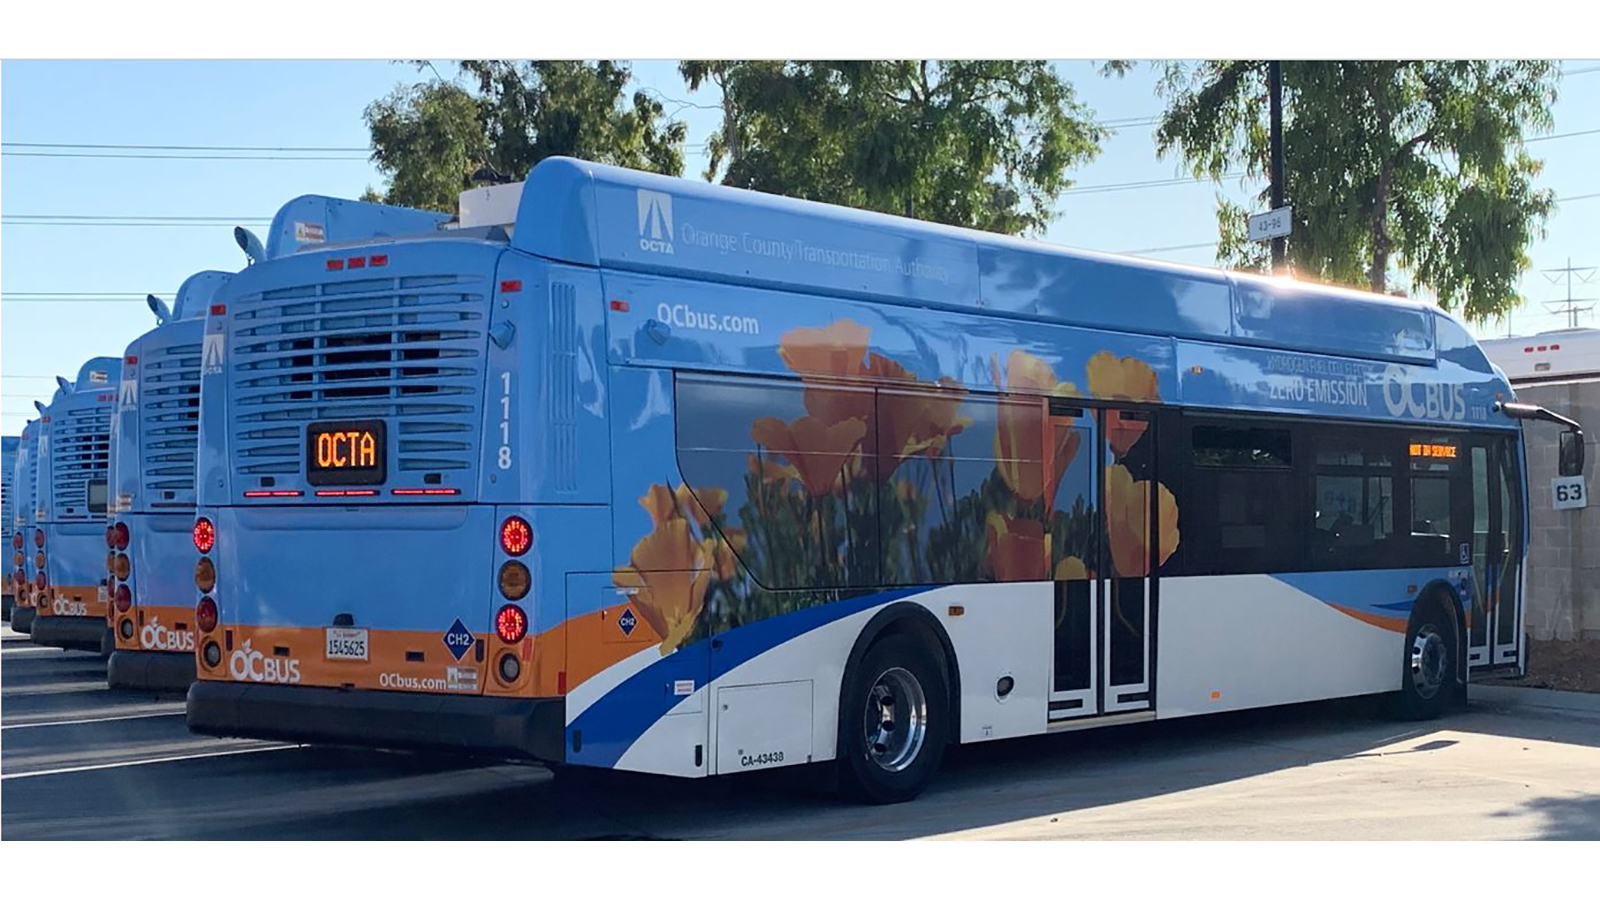 Intersections-Fuel cell buses at Orange County Transit Authority